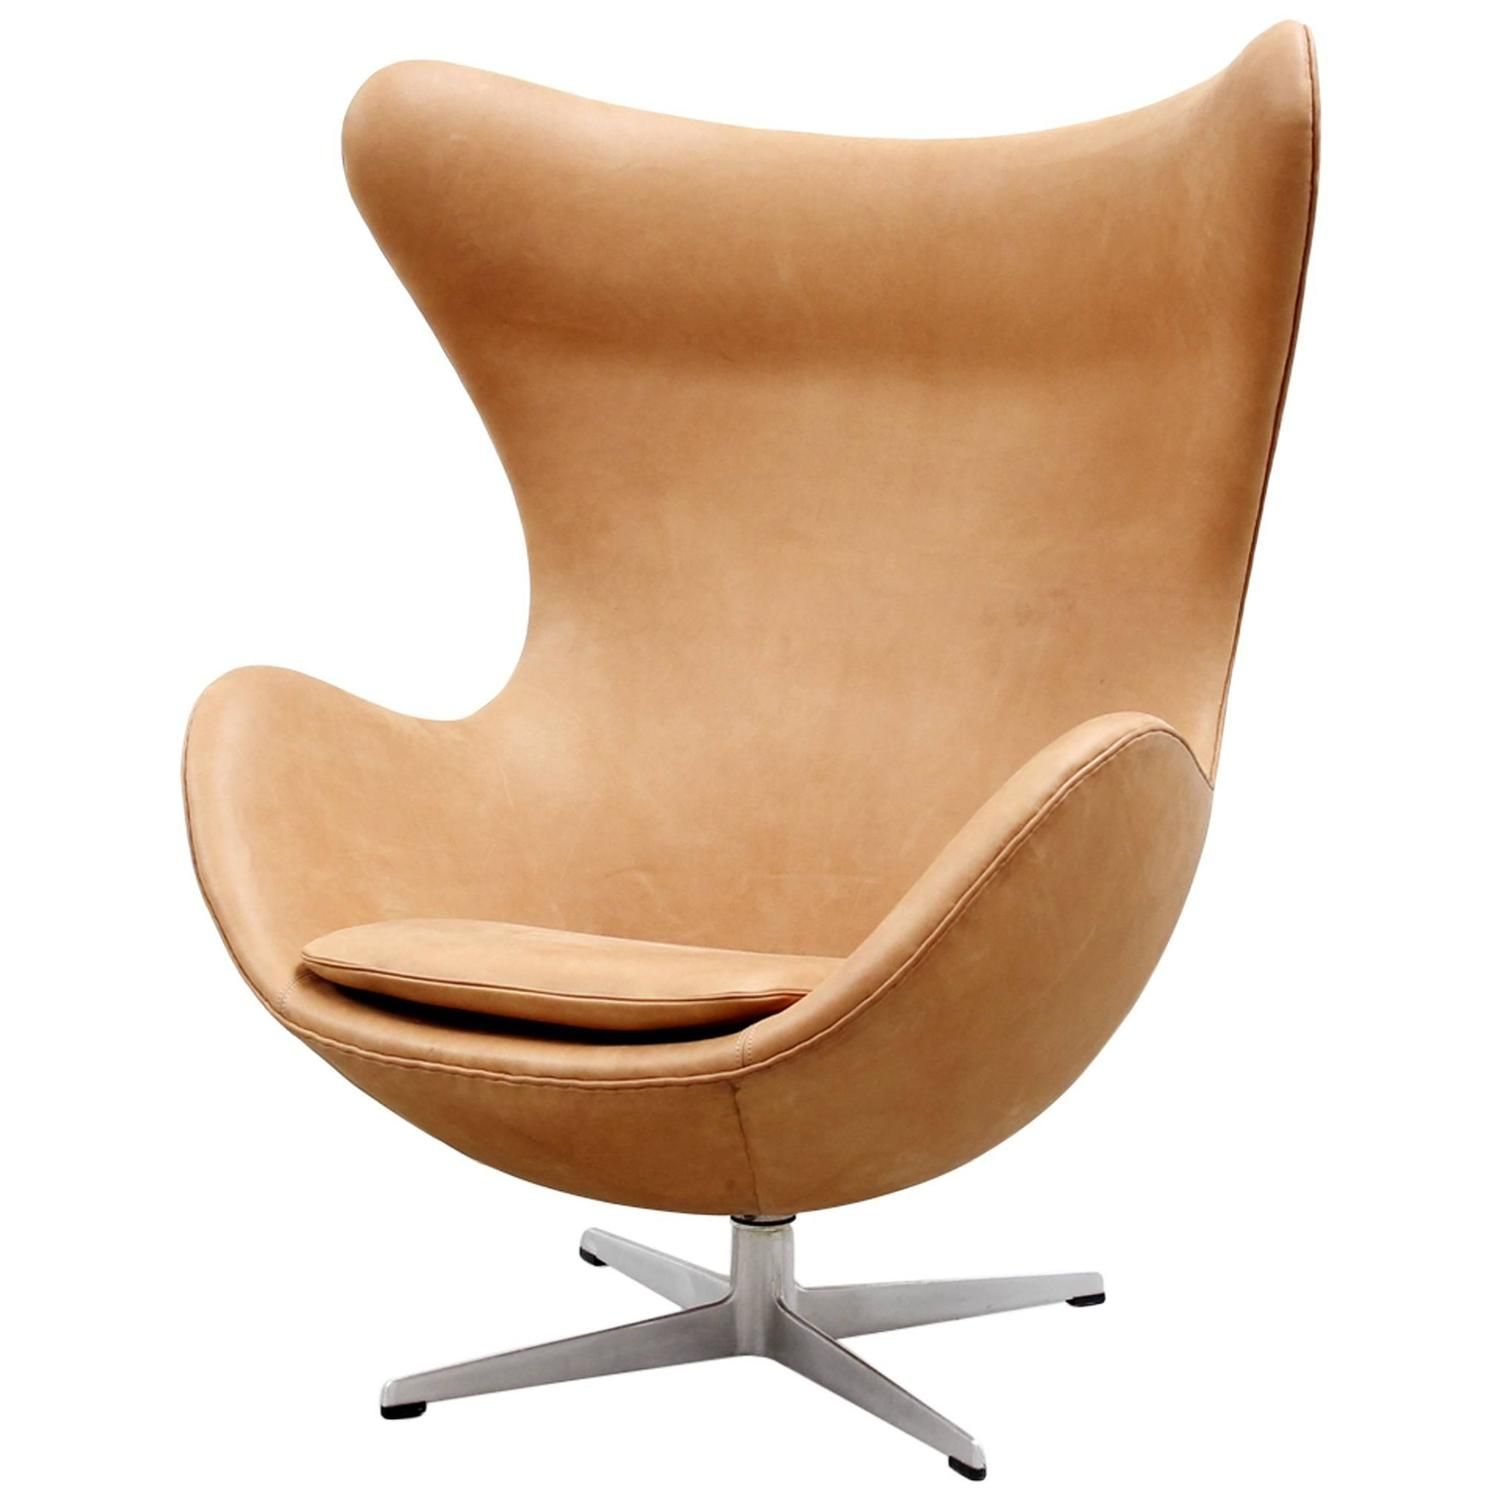 Cognac Leather Egg Chairarne Jacobsen For Fritz Hansen, 1966 Intended For Alder Grande Ii Swivel Chairs (Photo 12 of 20)